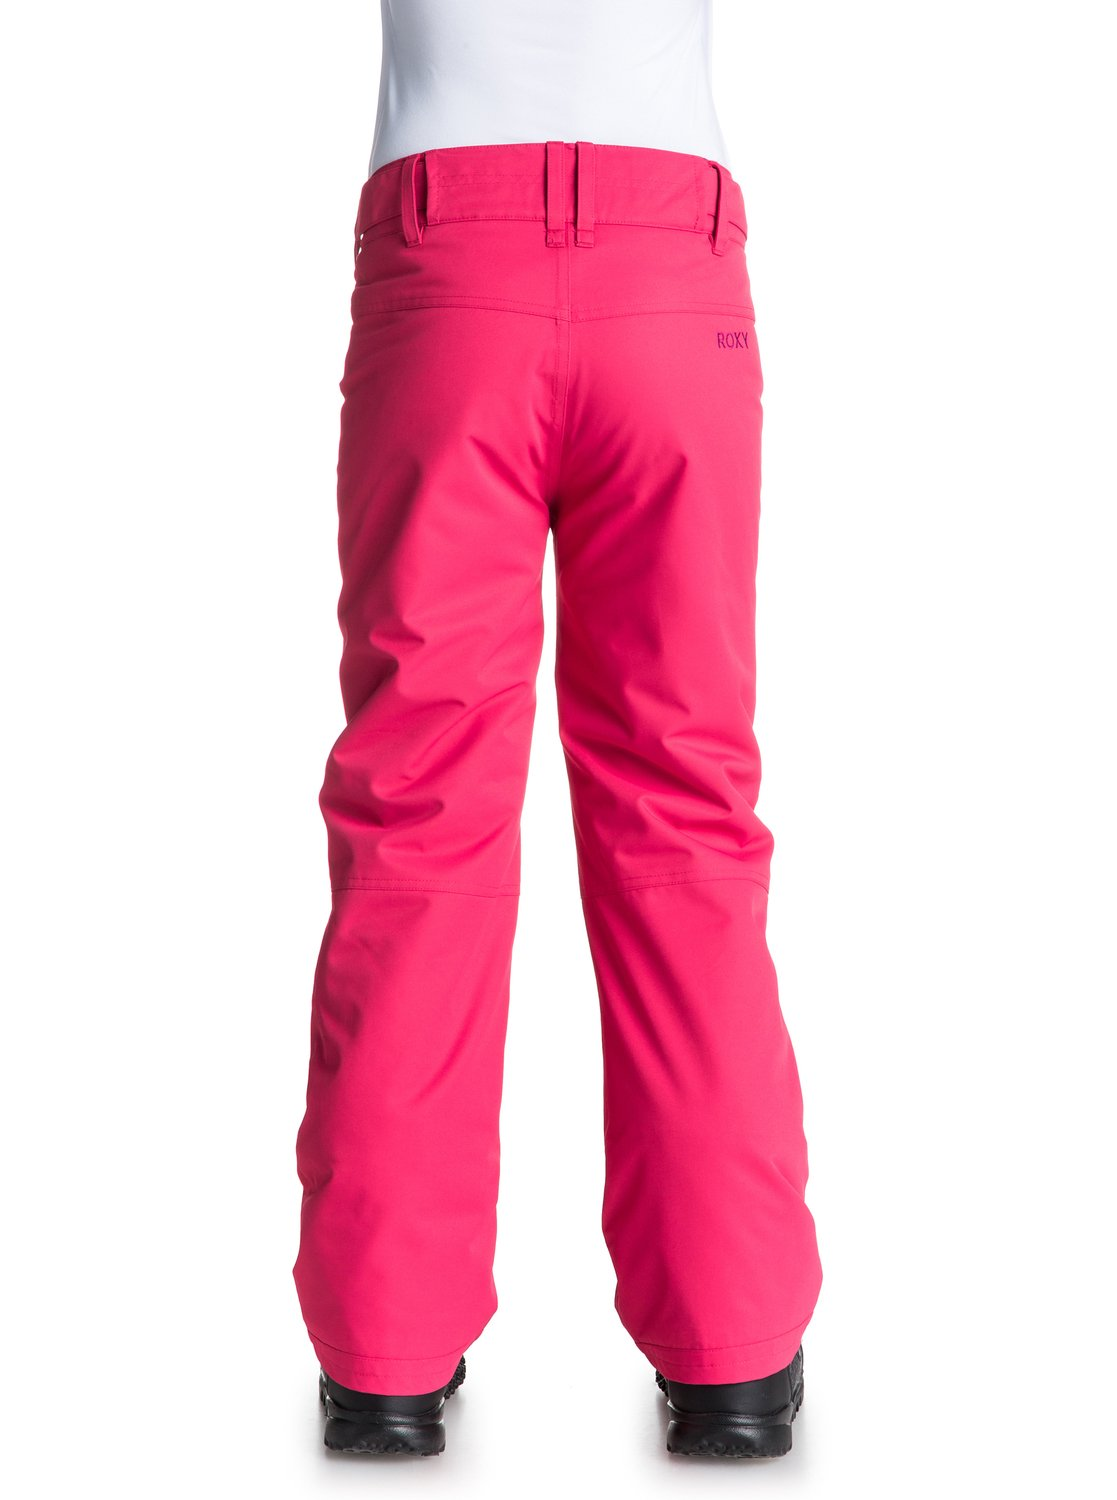 Girls Snow Pants & Winter Pants. When you need girls' snow pants, turn to desire-date.tk's impressive selection that your girl will love. Whether tearing through fresh powder on the mountain or sledding down a park hill, your teen girl will stay warm and dry for hours in our quality snow and winter pants.